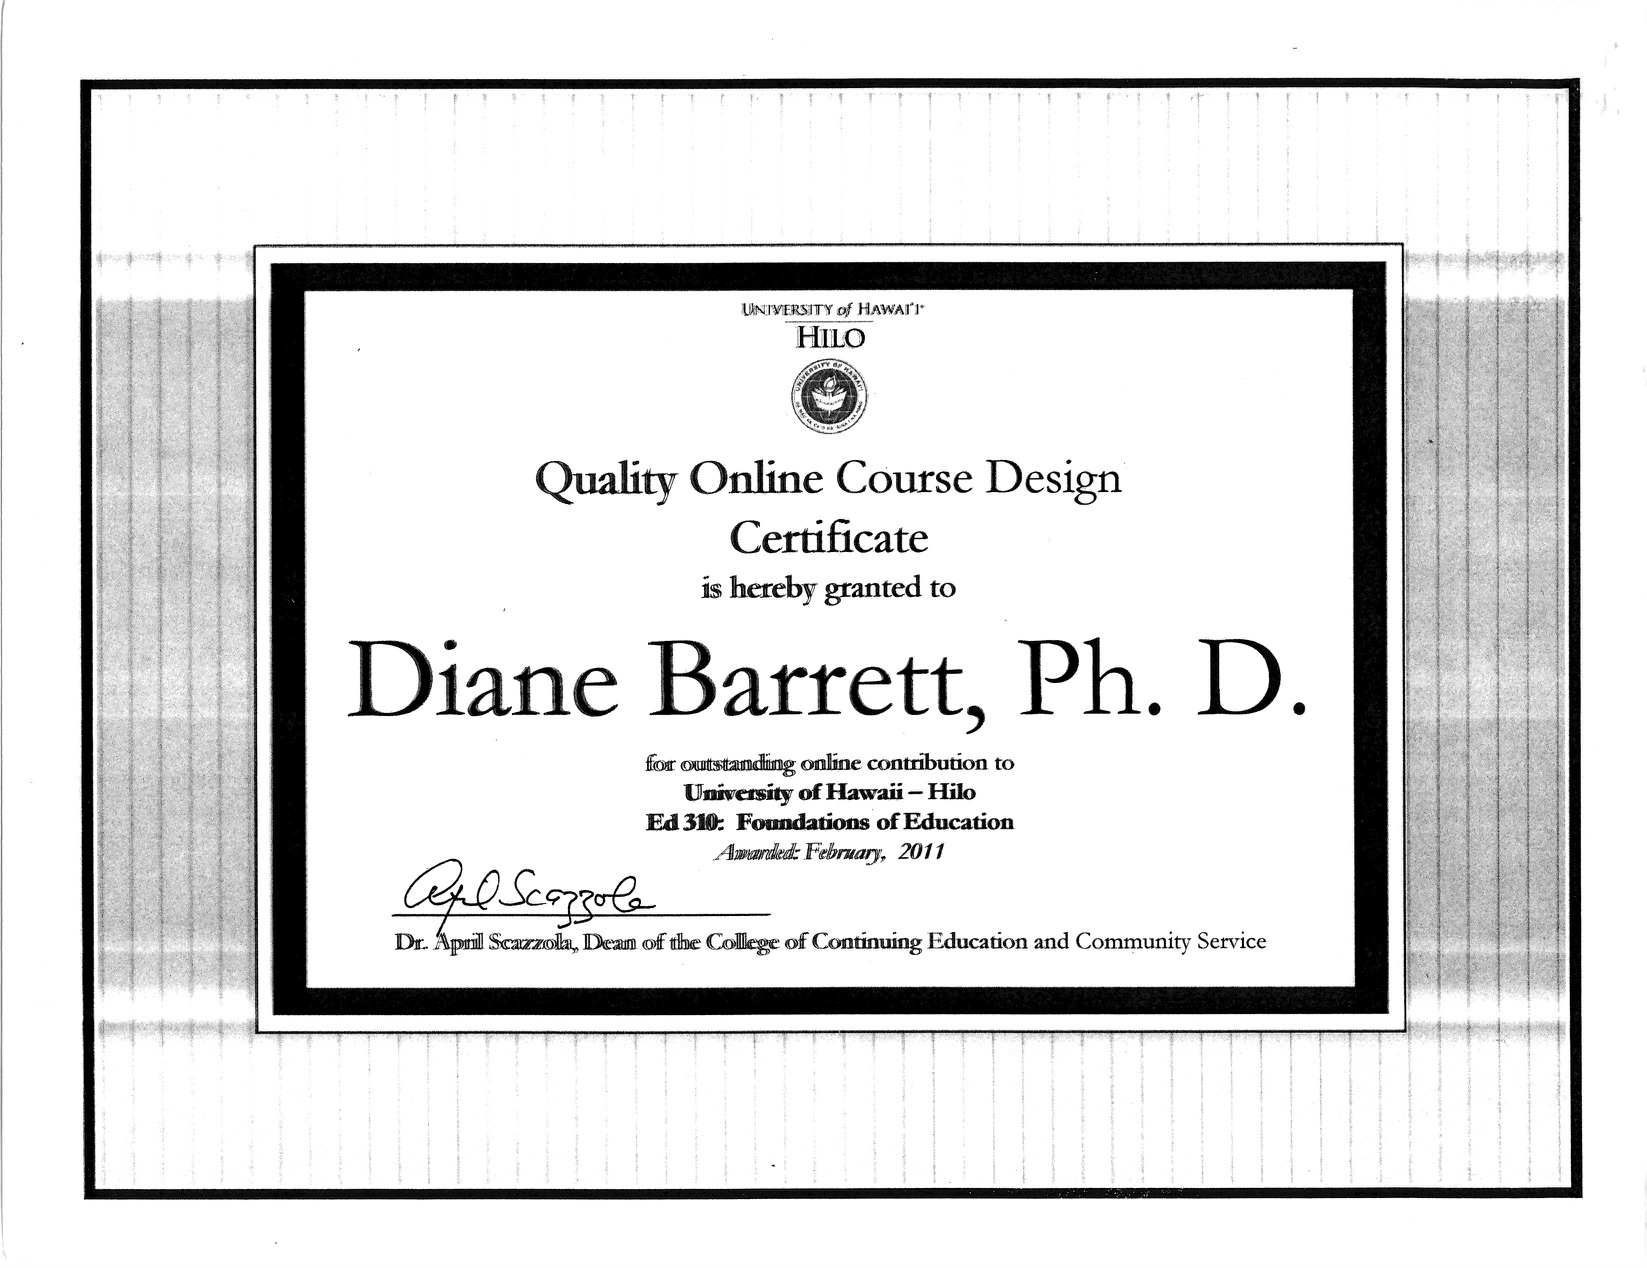 Quality Online Course Design Certificate, awarded to Diane Barrett